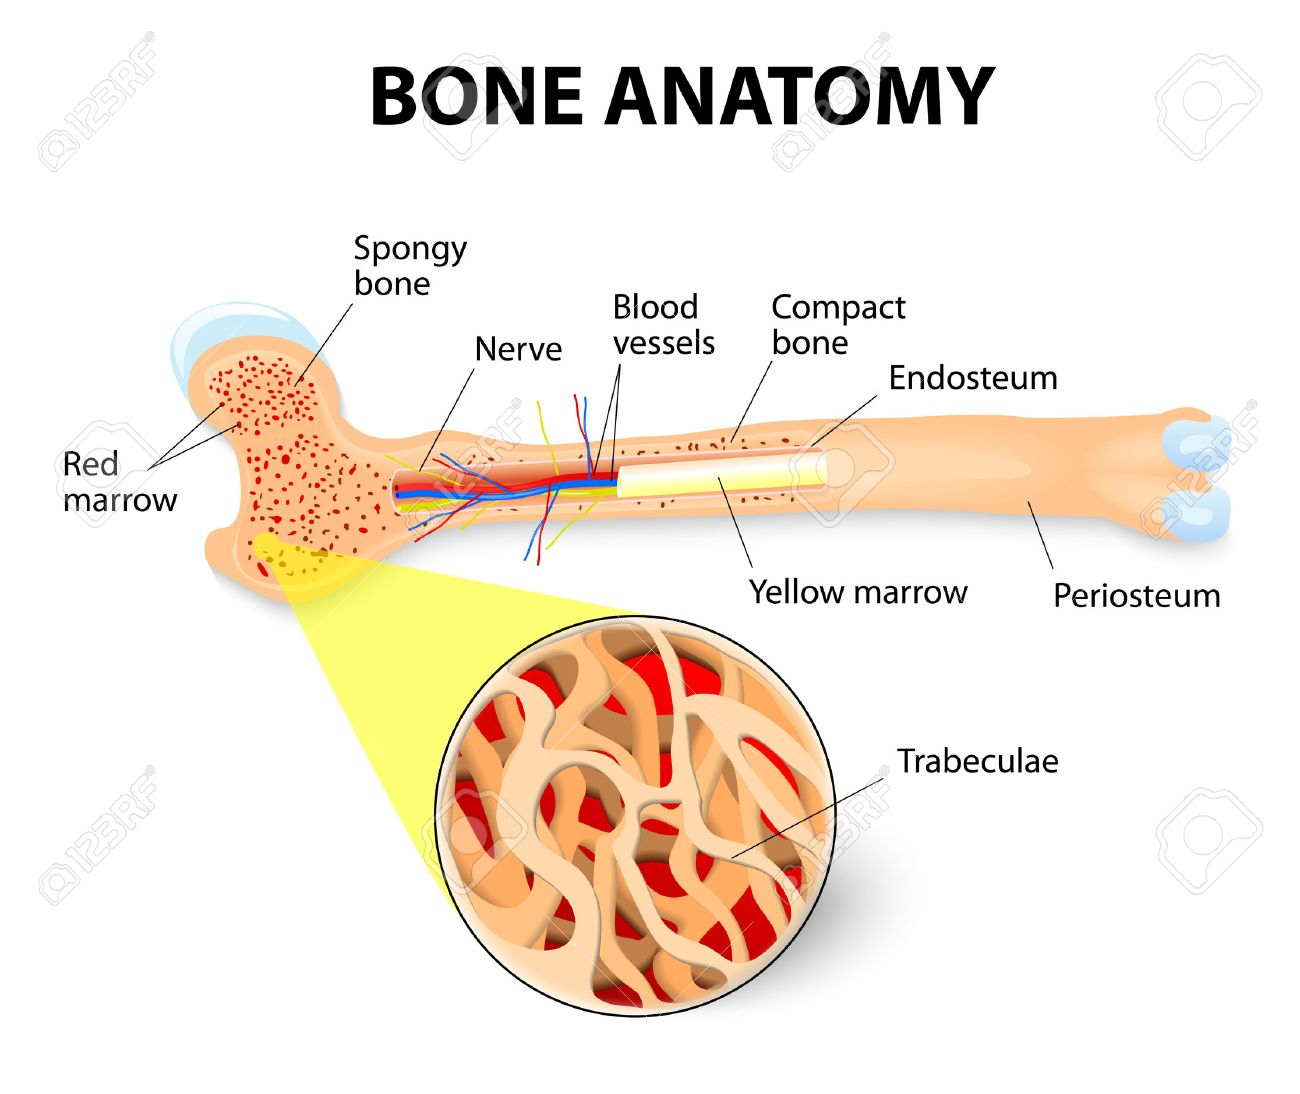 hight resolution of periosteum endosteum bone marrow and trabeculae stock